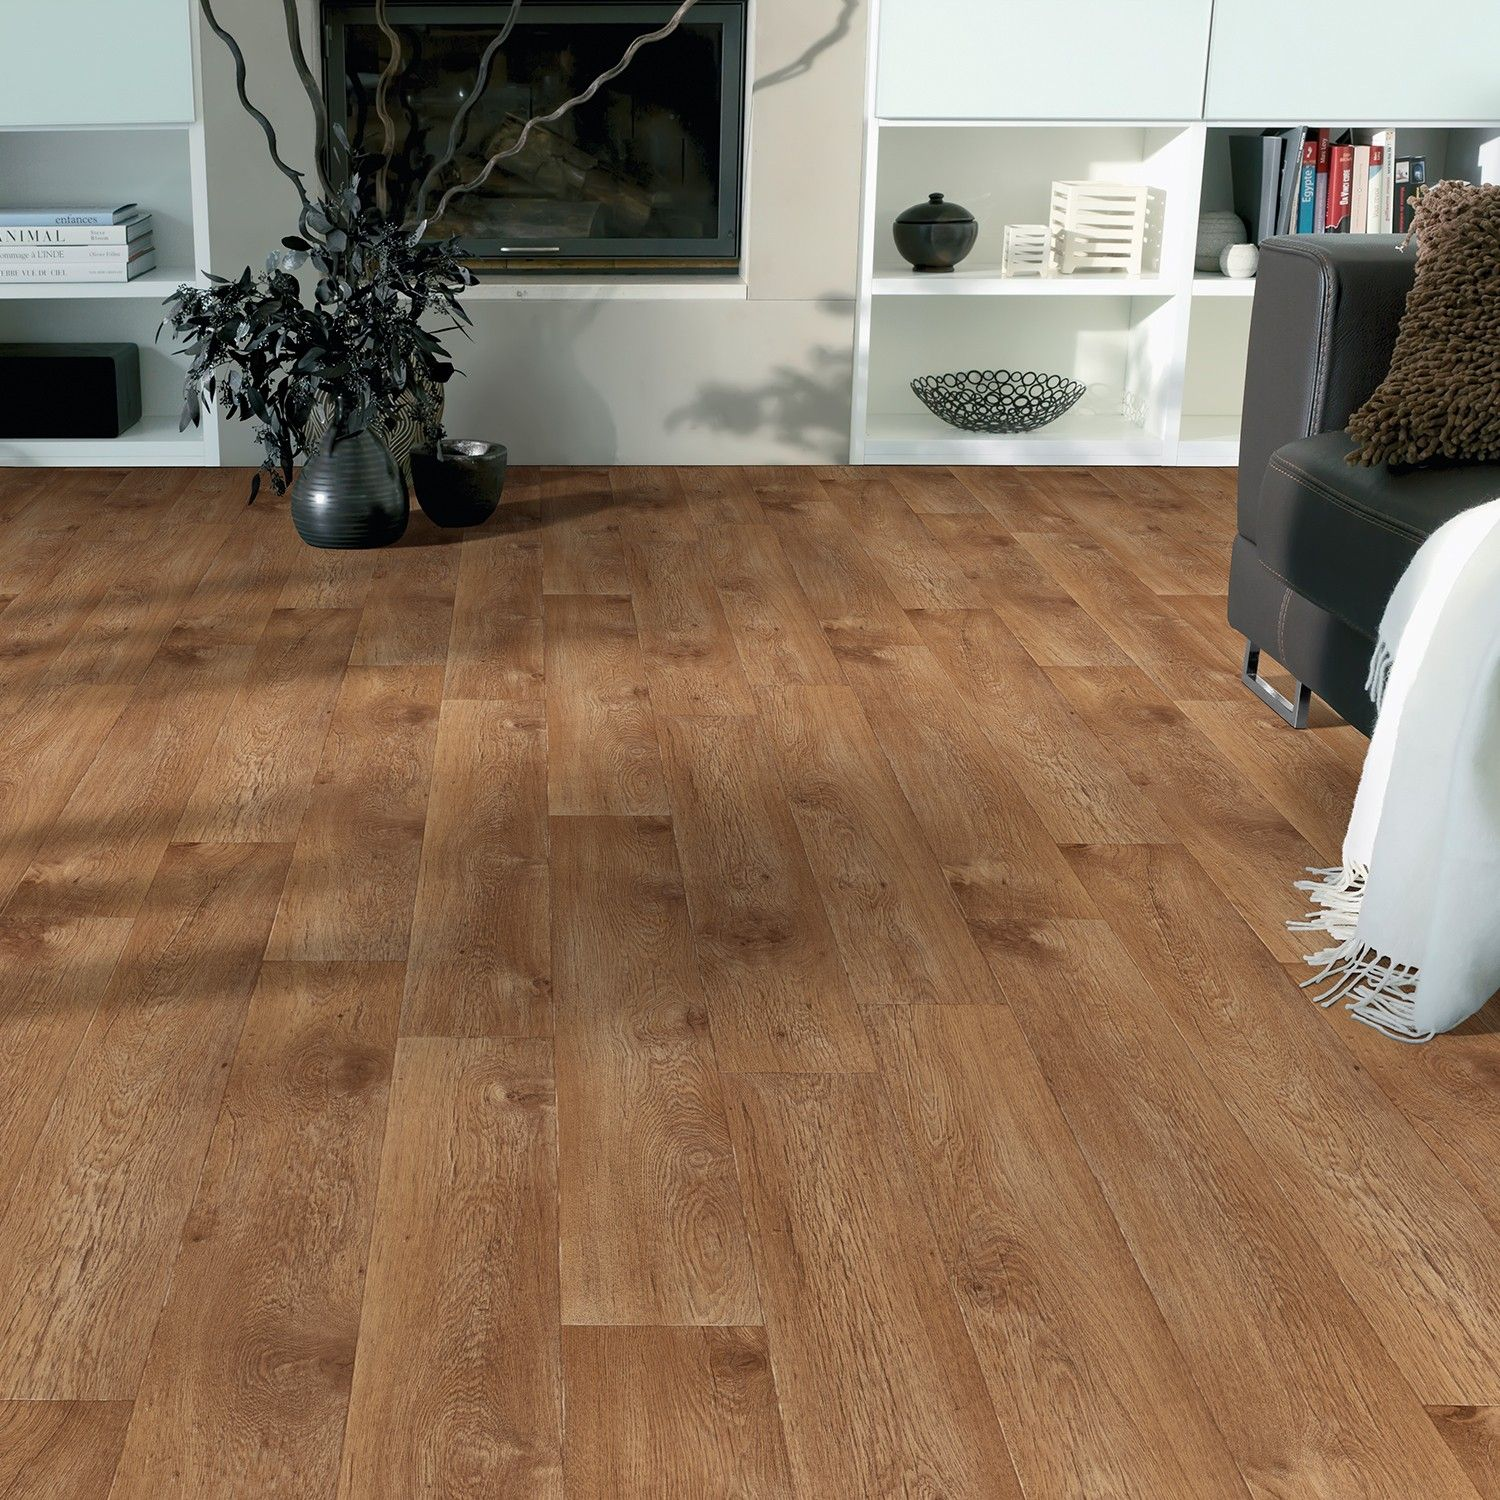 Rhino style kent moyen wood effect vinyl flooring house rhino style kent moyen wood effect vinyl flooring dailygadgetfo Image collections